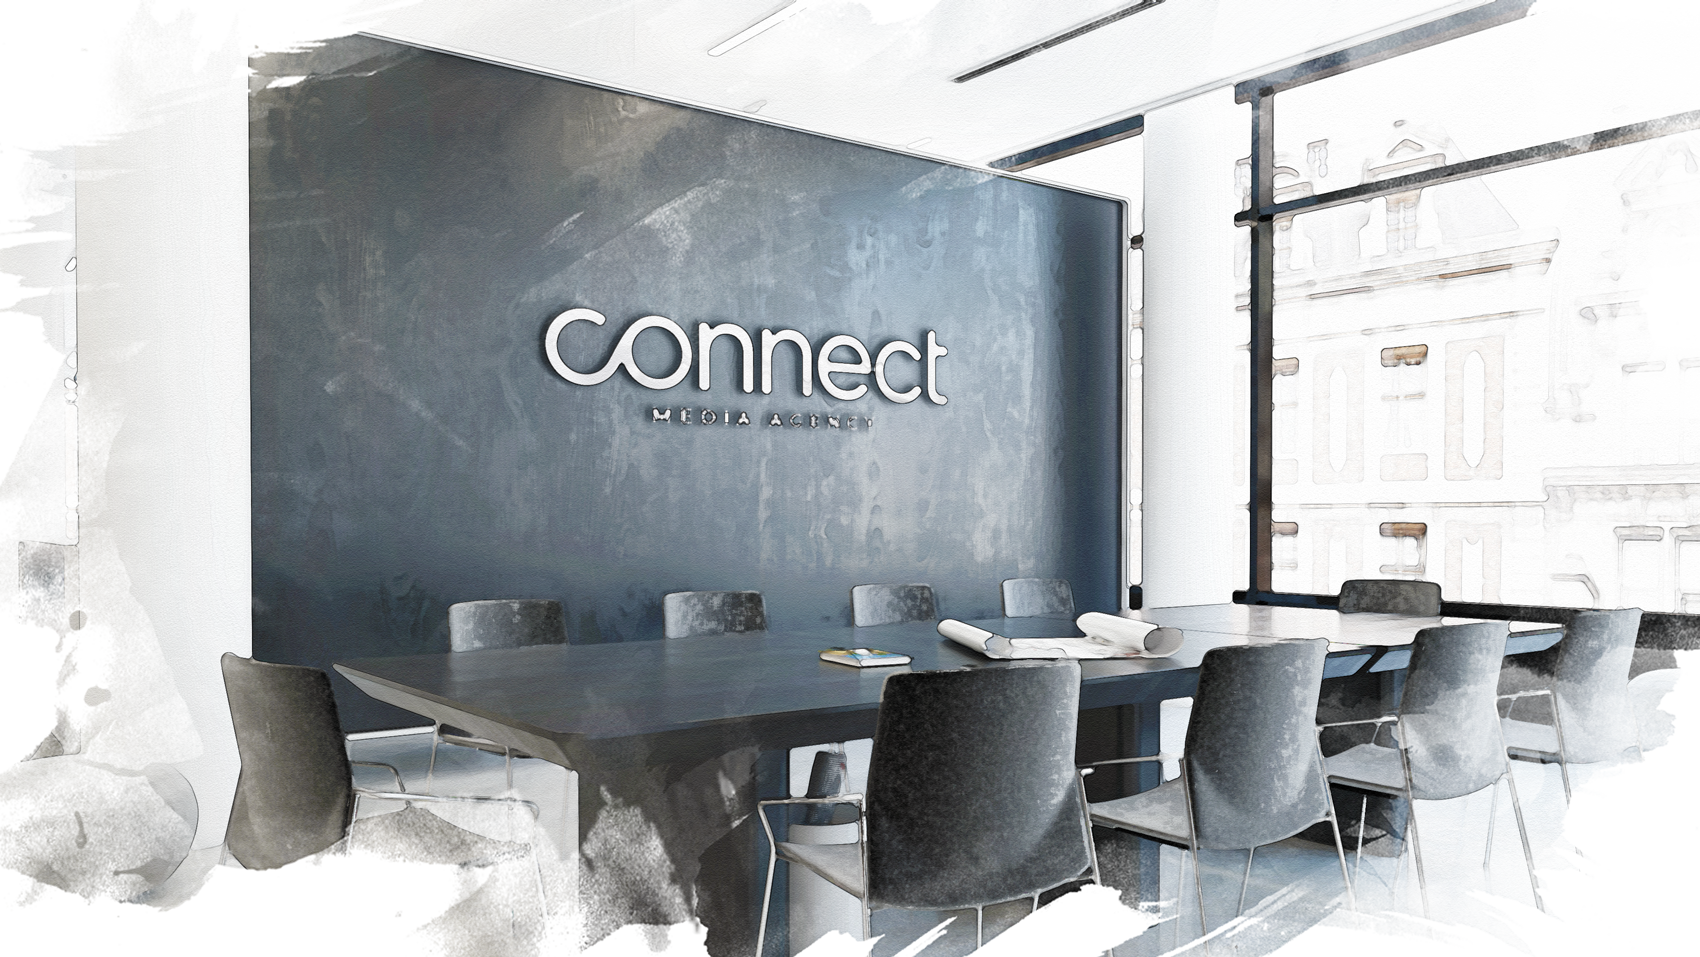 connect media agency office